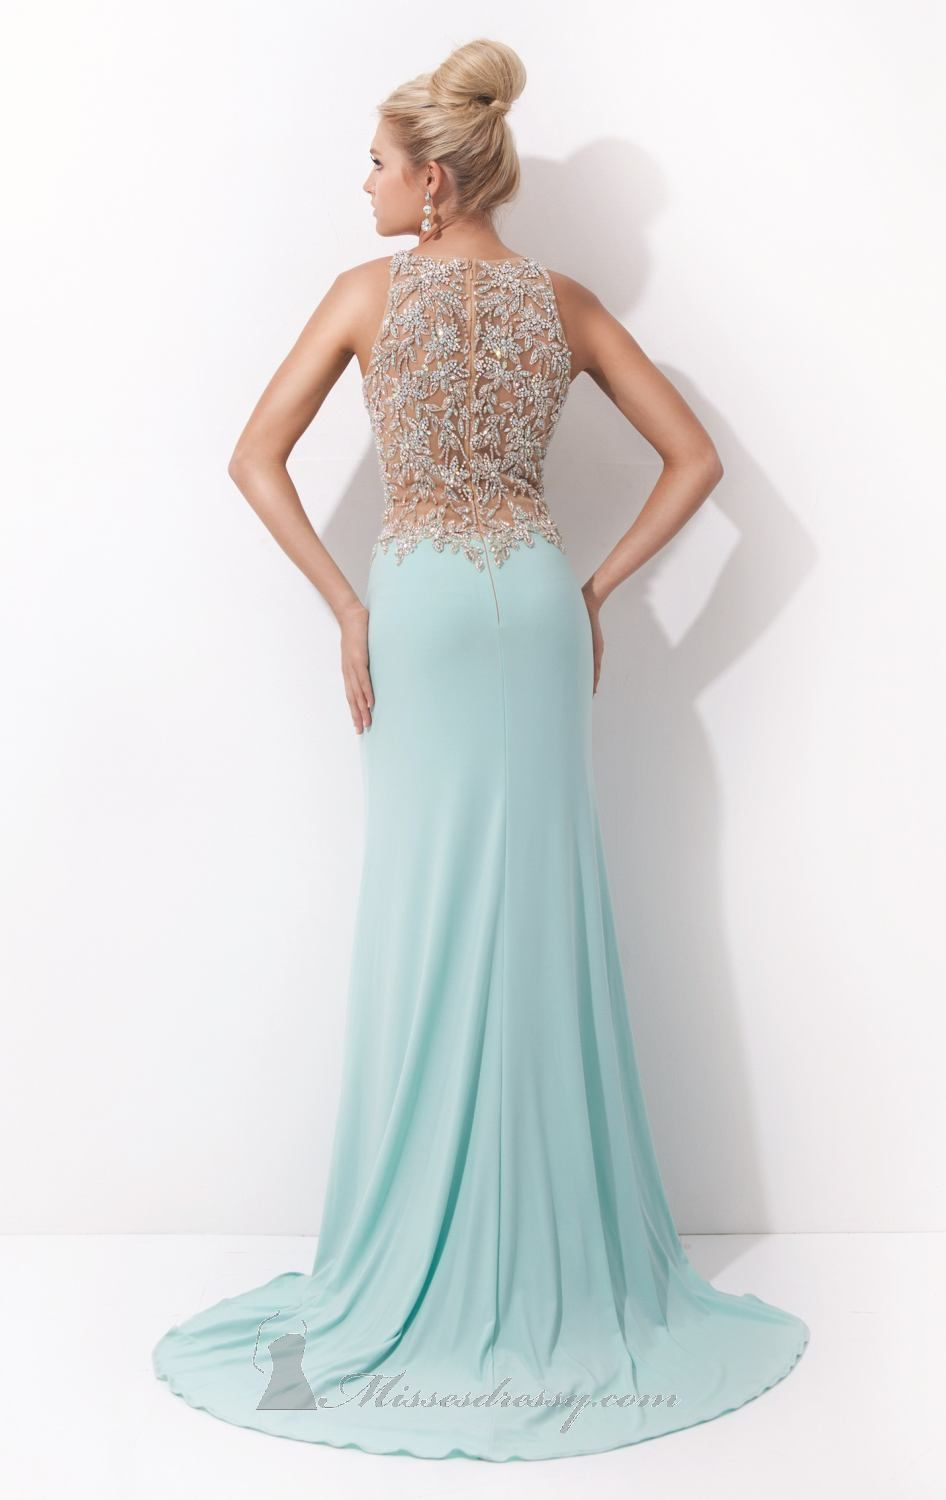 Tony Bowls 114C21 by Tony Bowls Collections | Fashionista ...